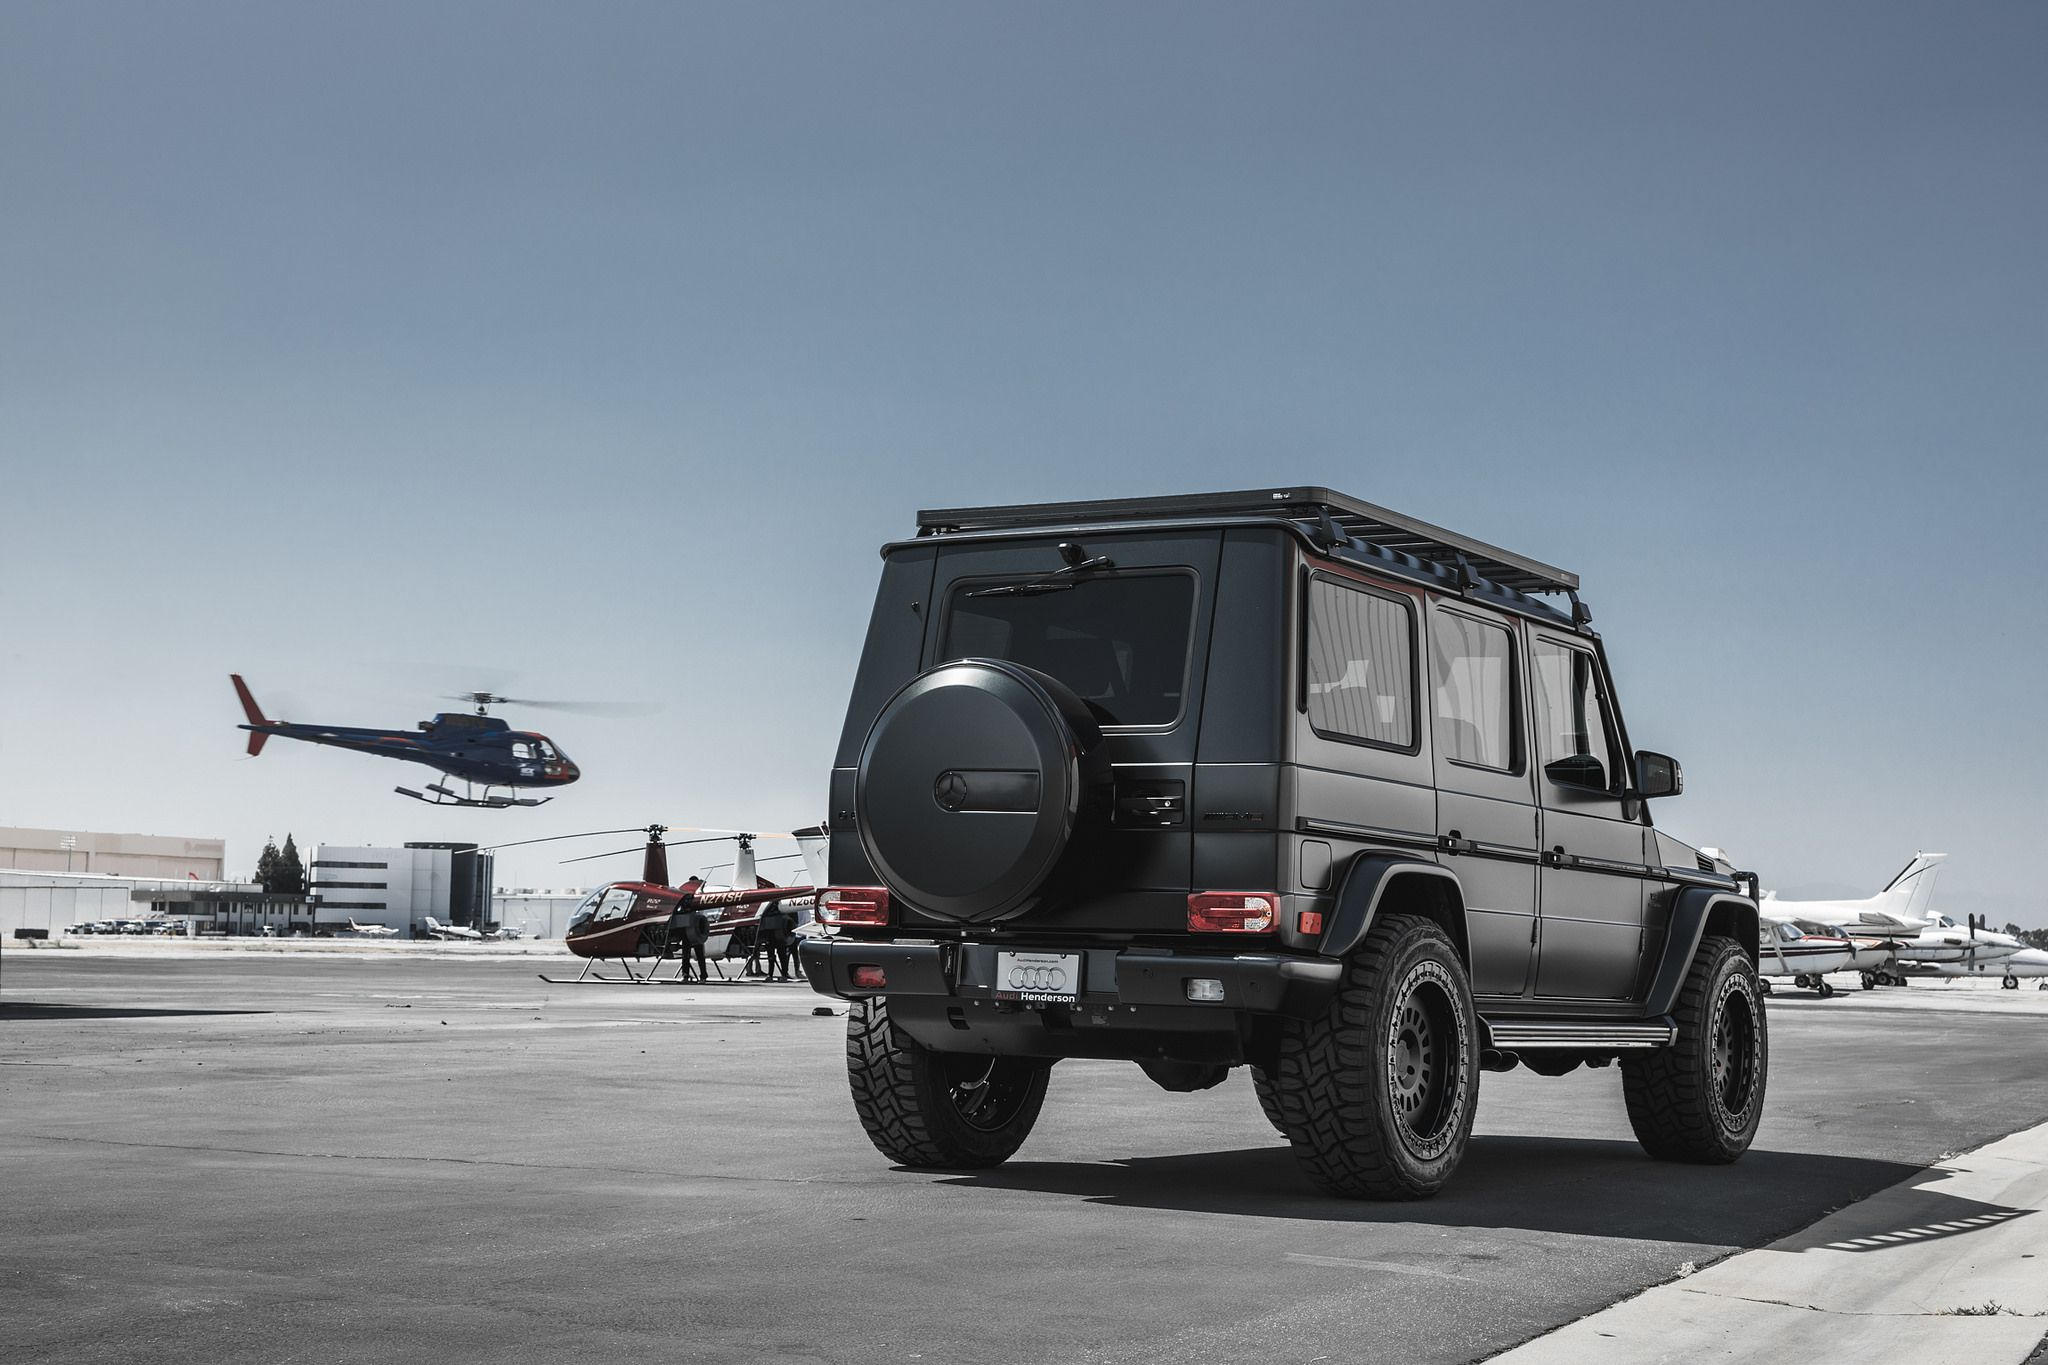 Black SUV G-Class on Rotiform CCV-OR wheels - Mercedes-Benz G63 and helicopter